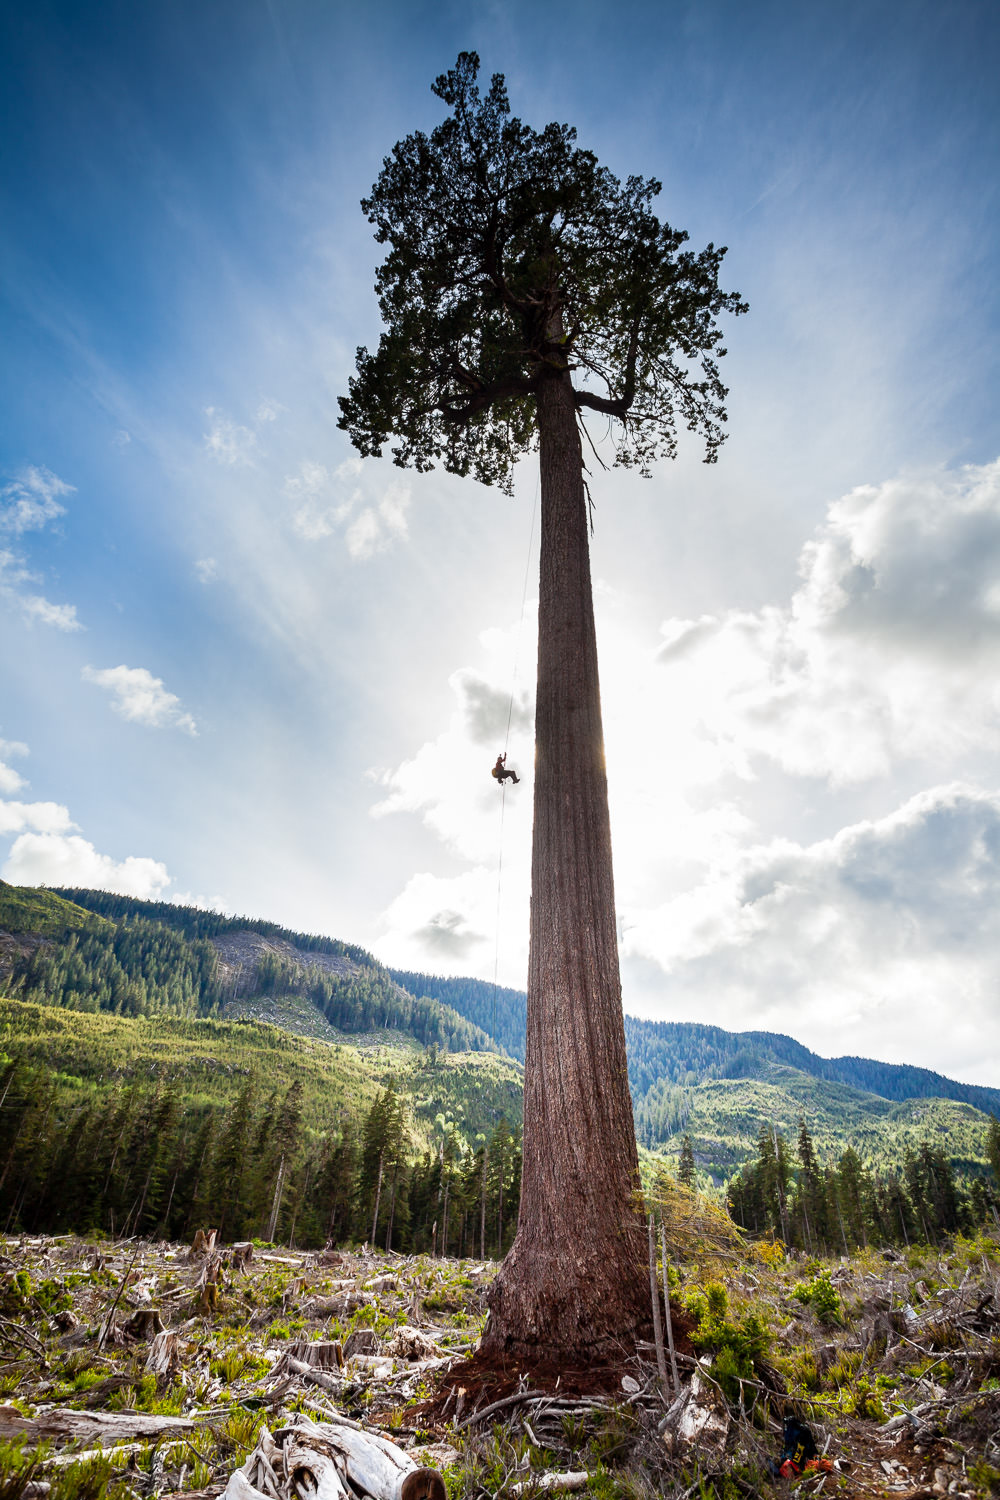 A tree climber hangs suspended from Big Lonely Doug, Canada's 2nd largest Douglas-fir tree, growing near Port Renfrew. Photo courtesy of TJ Watt.